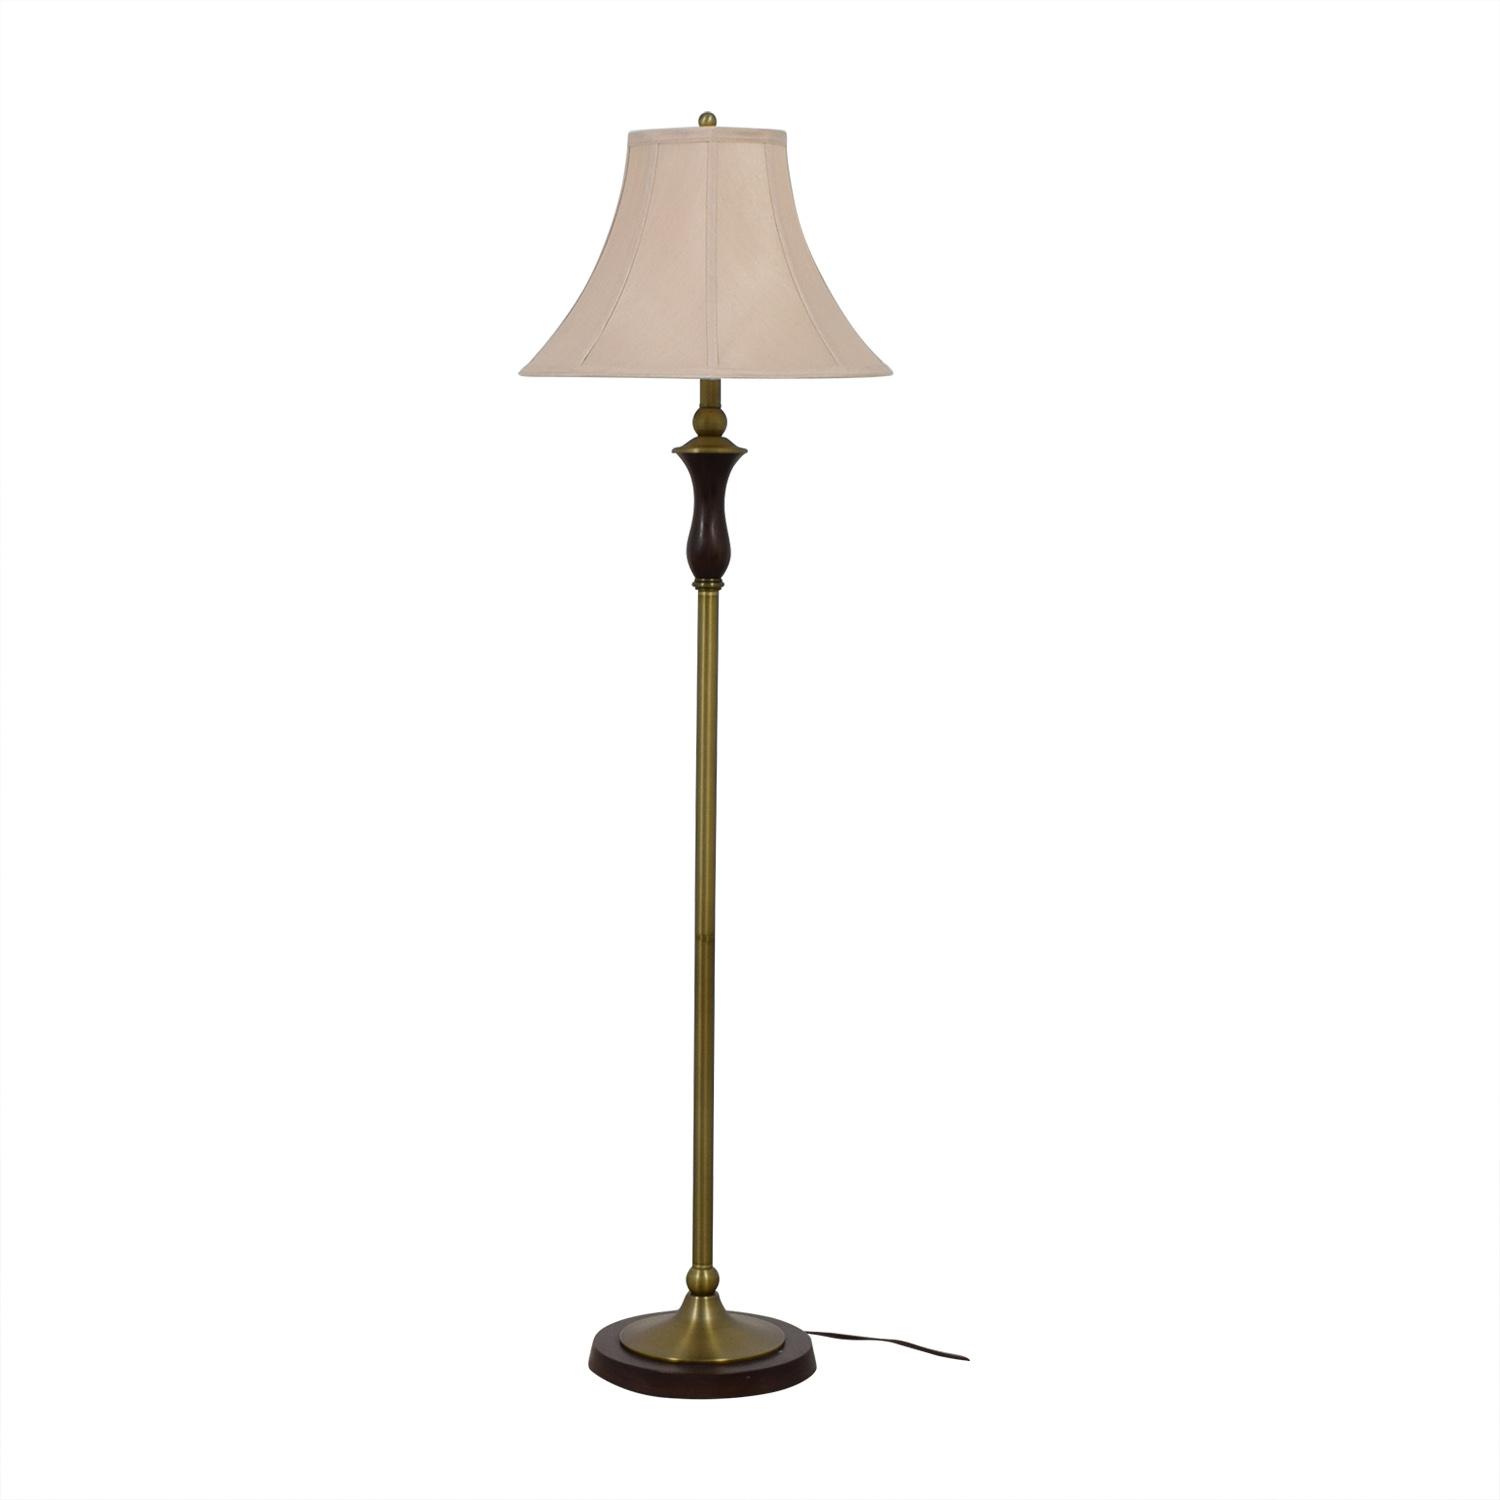 Crate & Barrel Crate & Barrel Wood and Brass Floor Lamp for sale